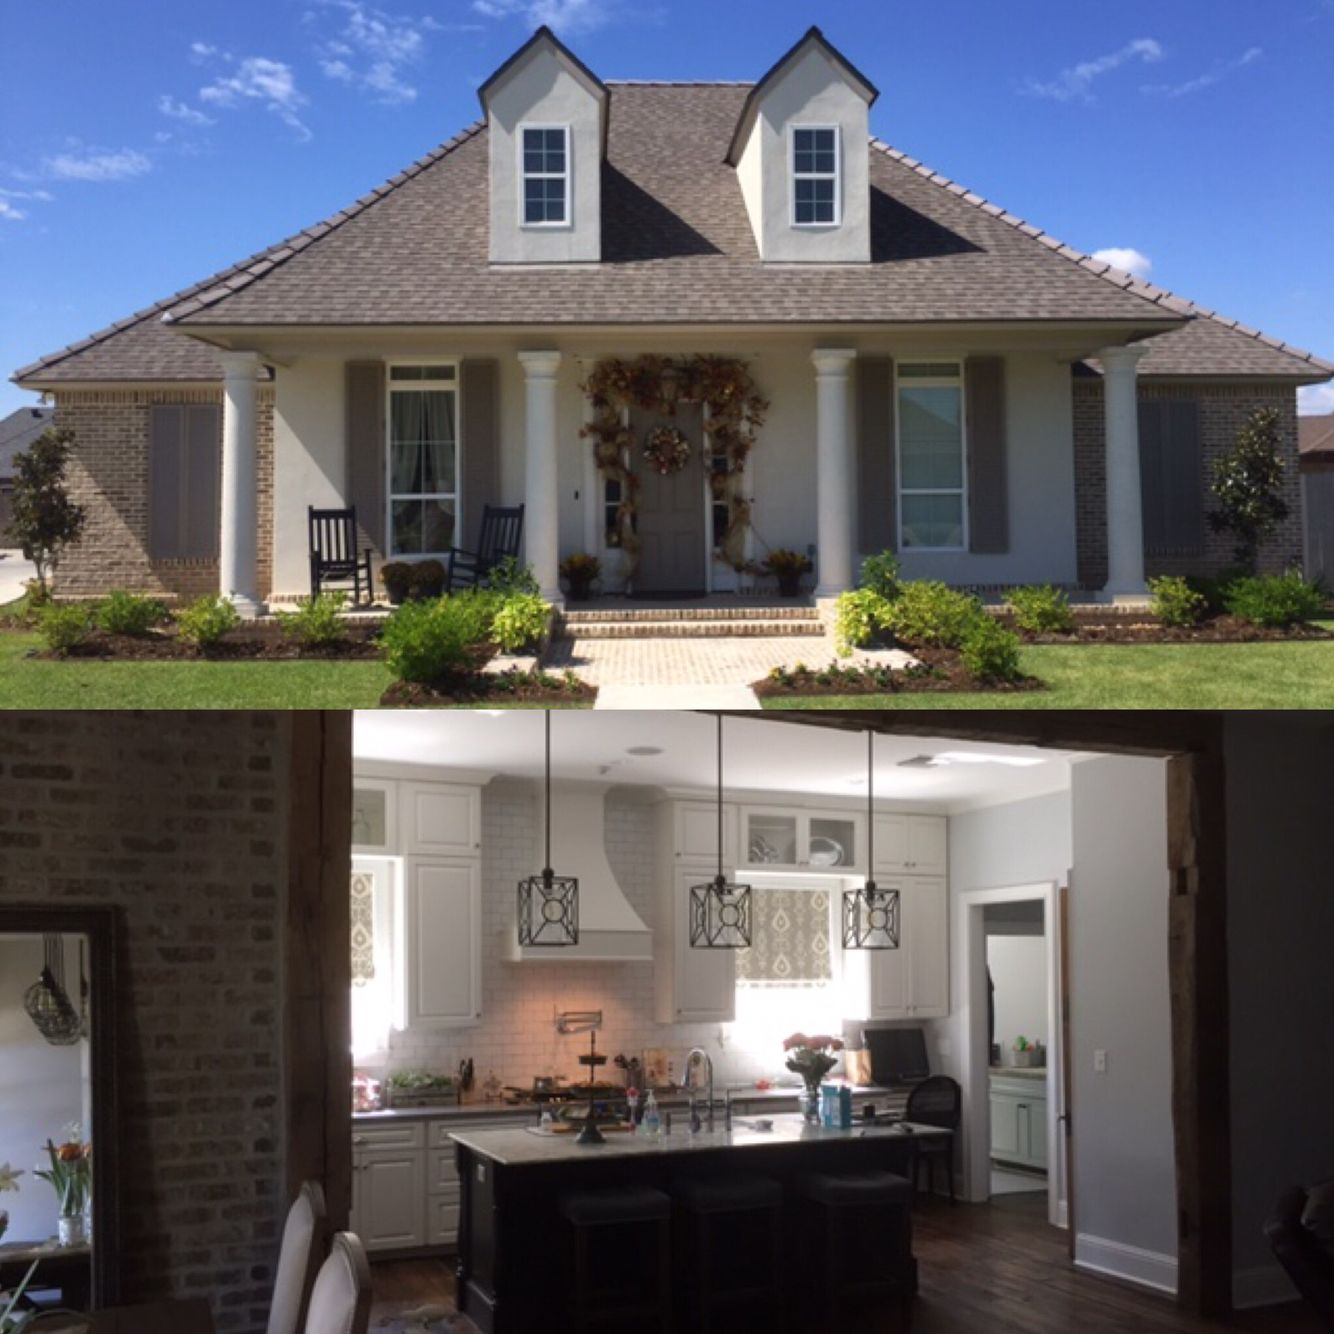 Plan 56379SM: Acadian House Plan With Great Rear Porch | Pinterest ...